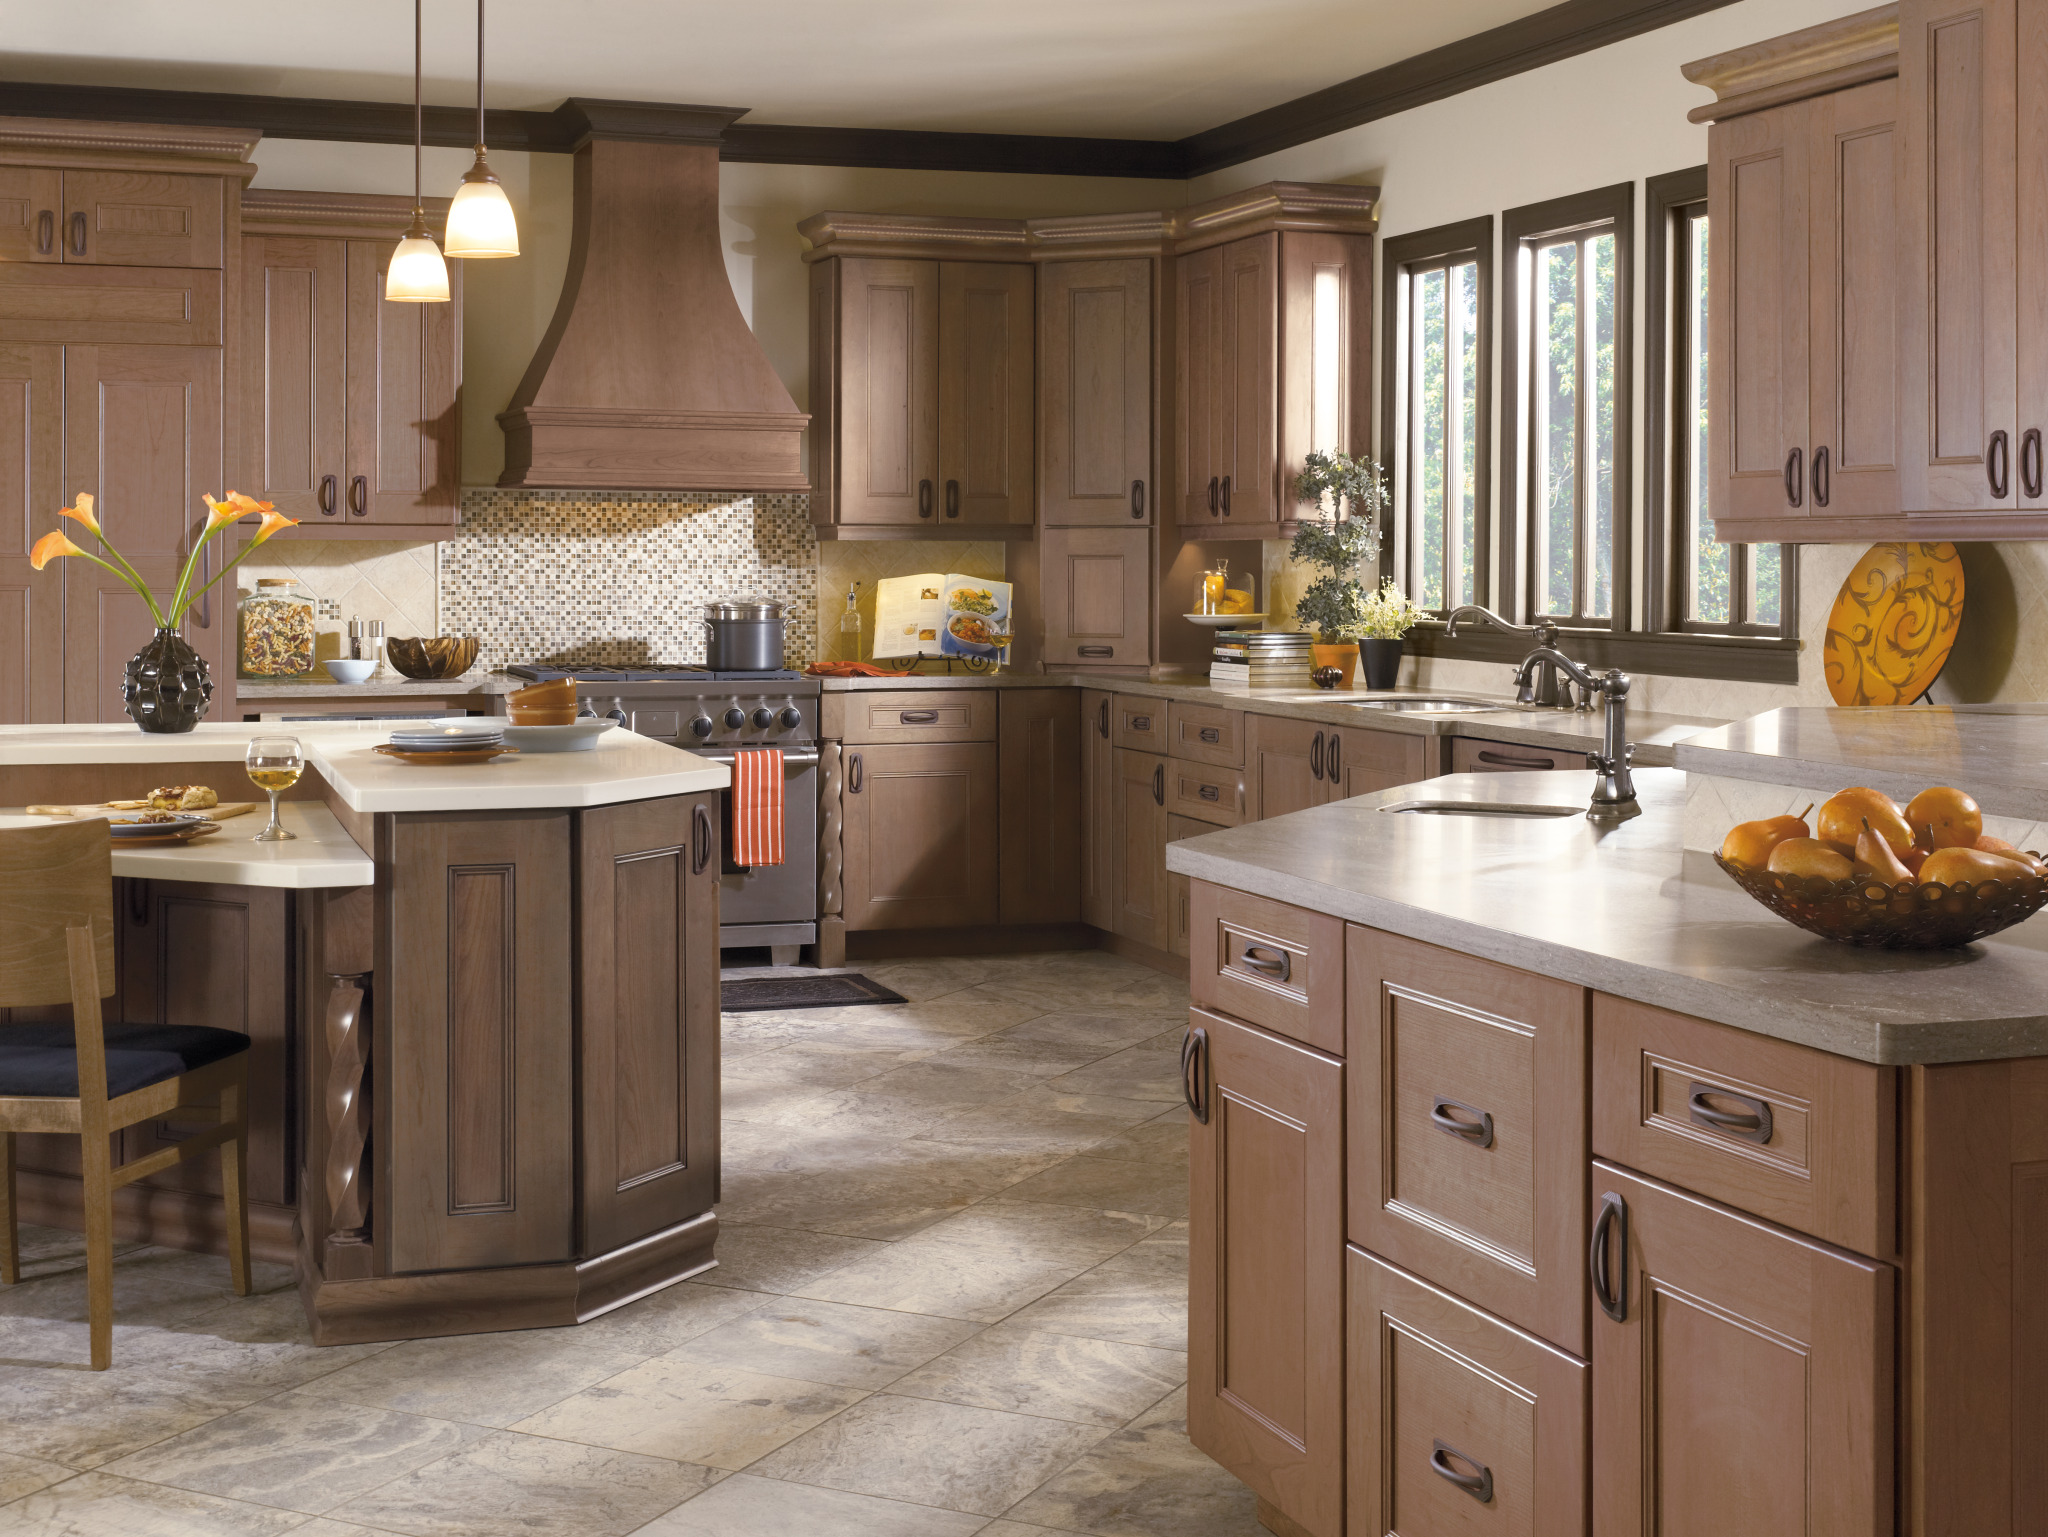 omega kitchen cabinets silverware dynasty cabinetry north shore ma derry nh